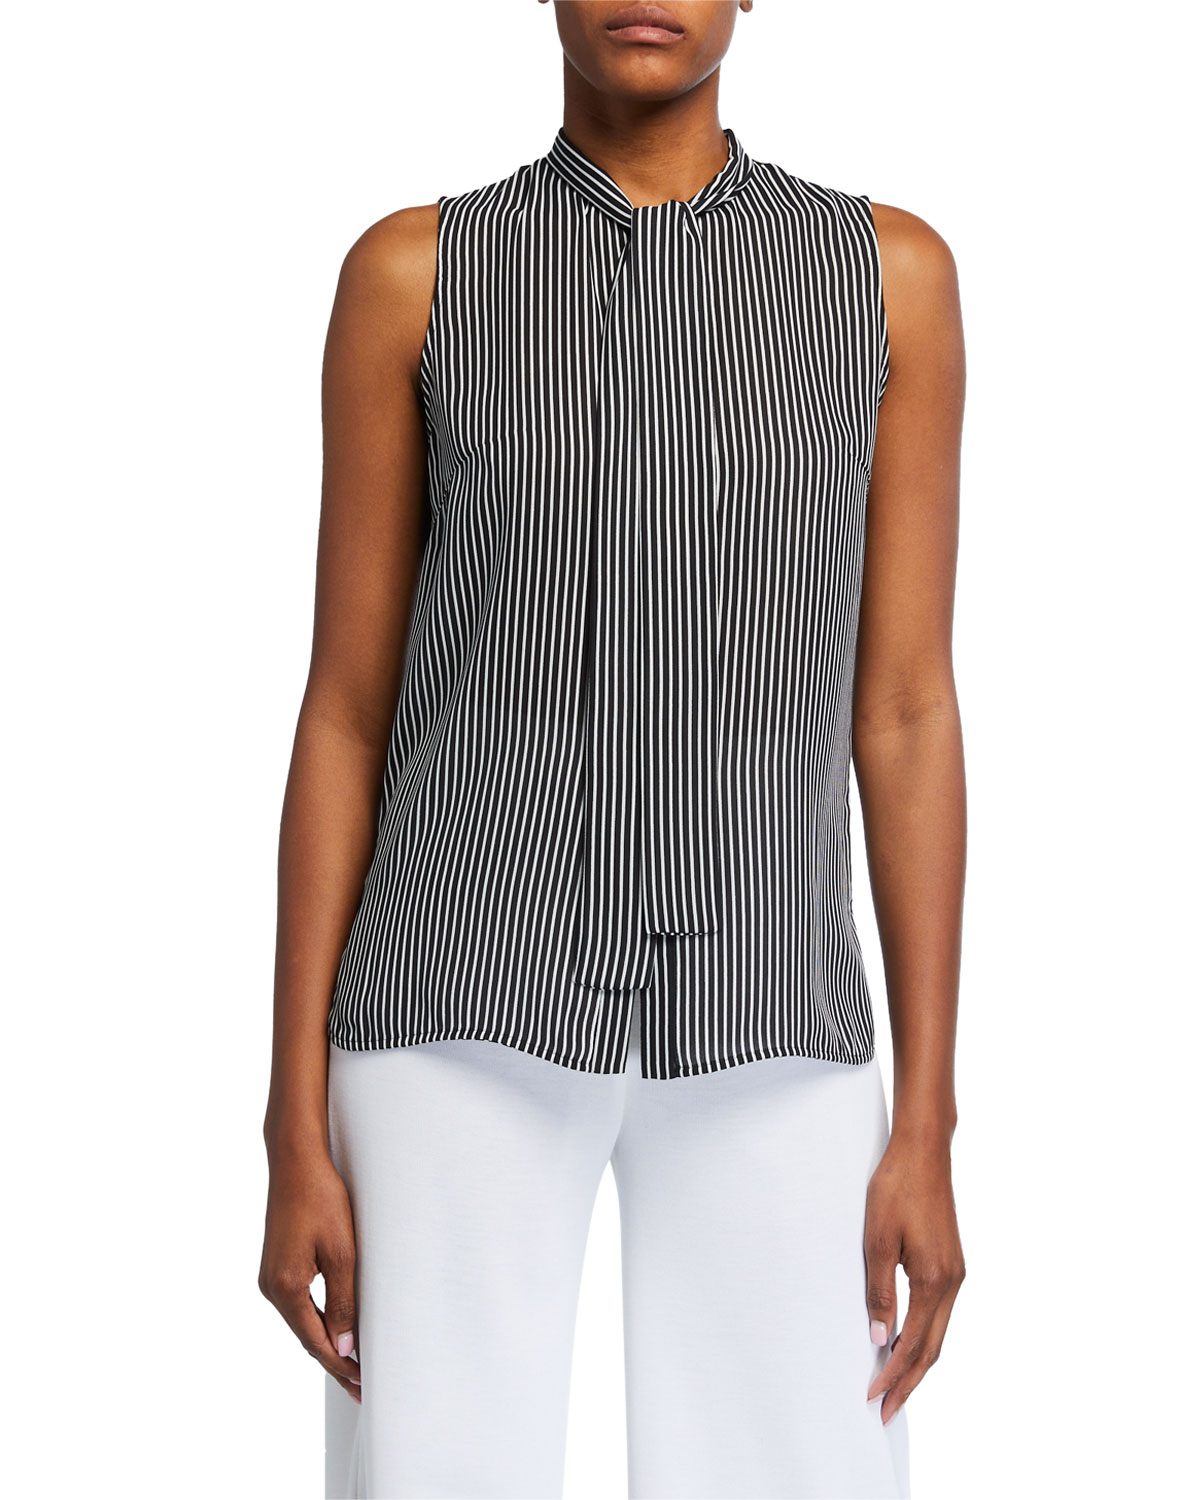 Misook Petite Striped Tie-Neck Sleeveless Blouse